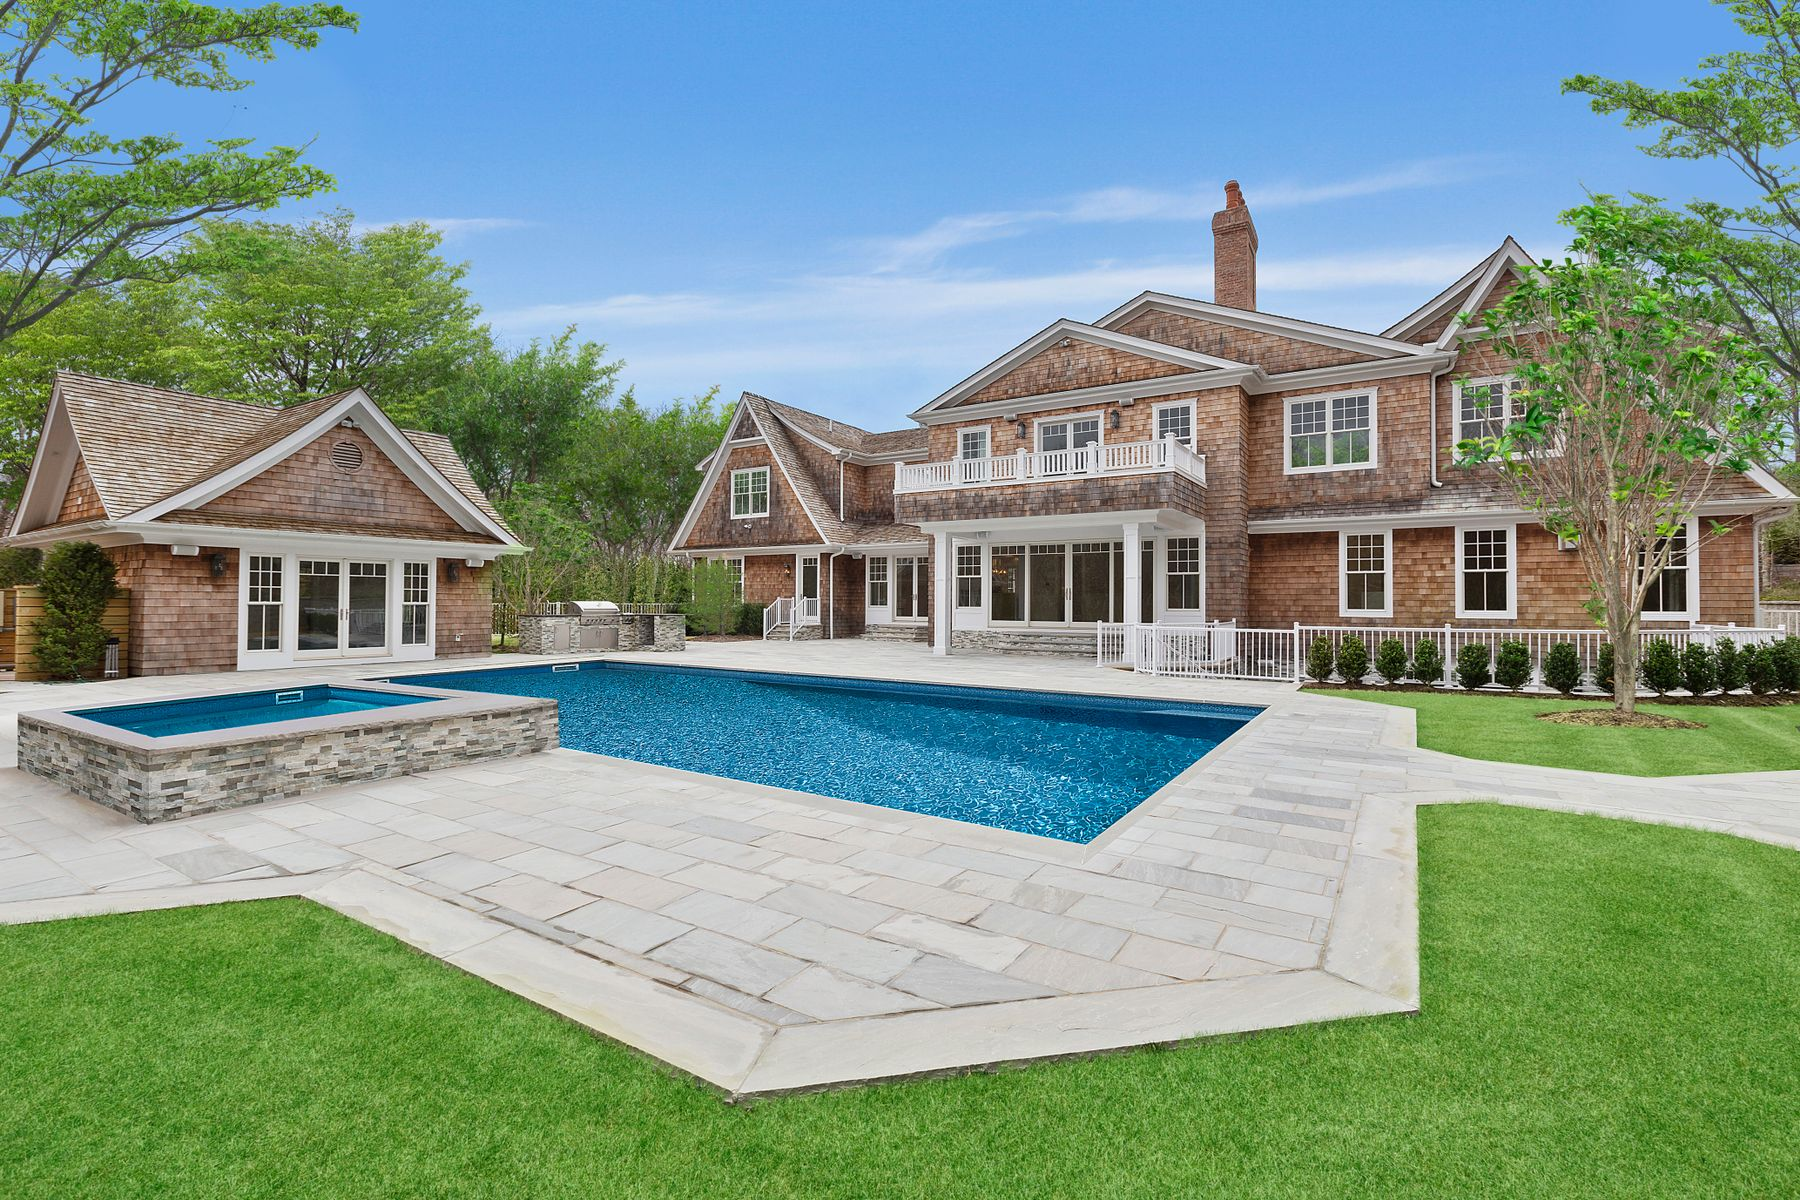 Property for Sale at Grand Southampton Estate Southampton, New York 11968 United States